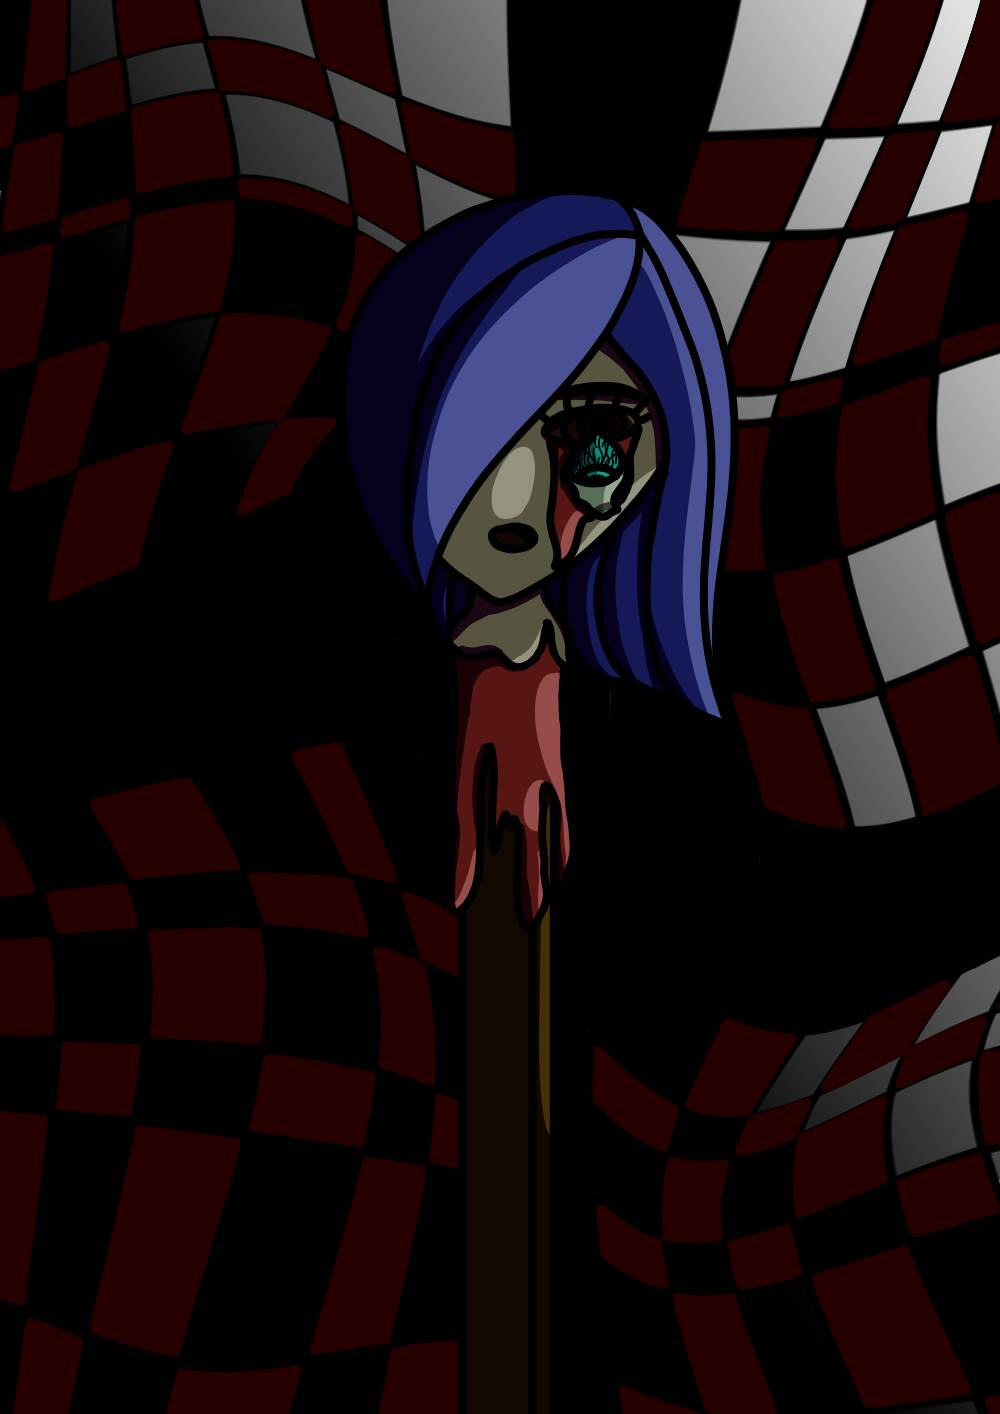 Edgy nightmare by TacoThursday